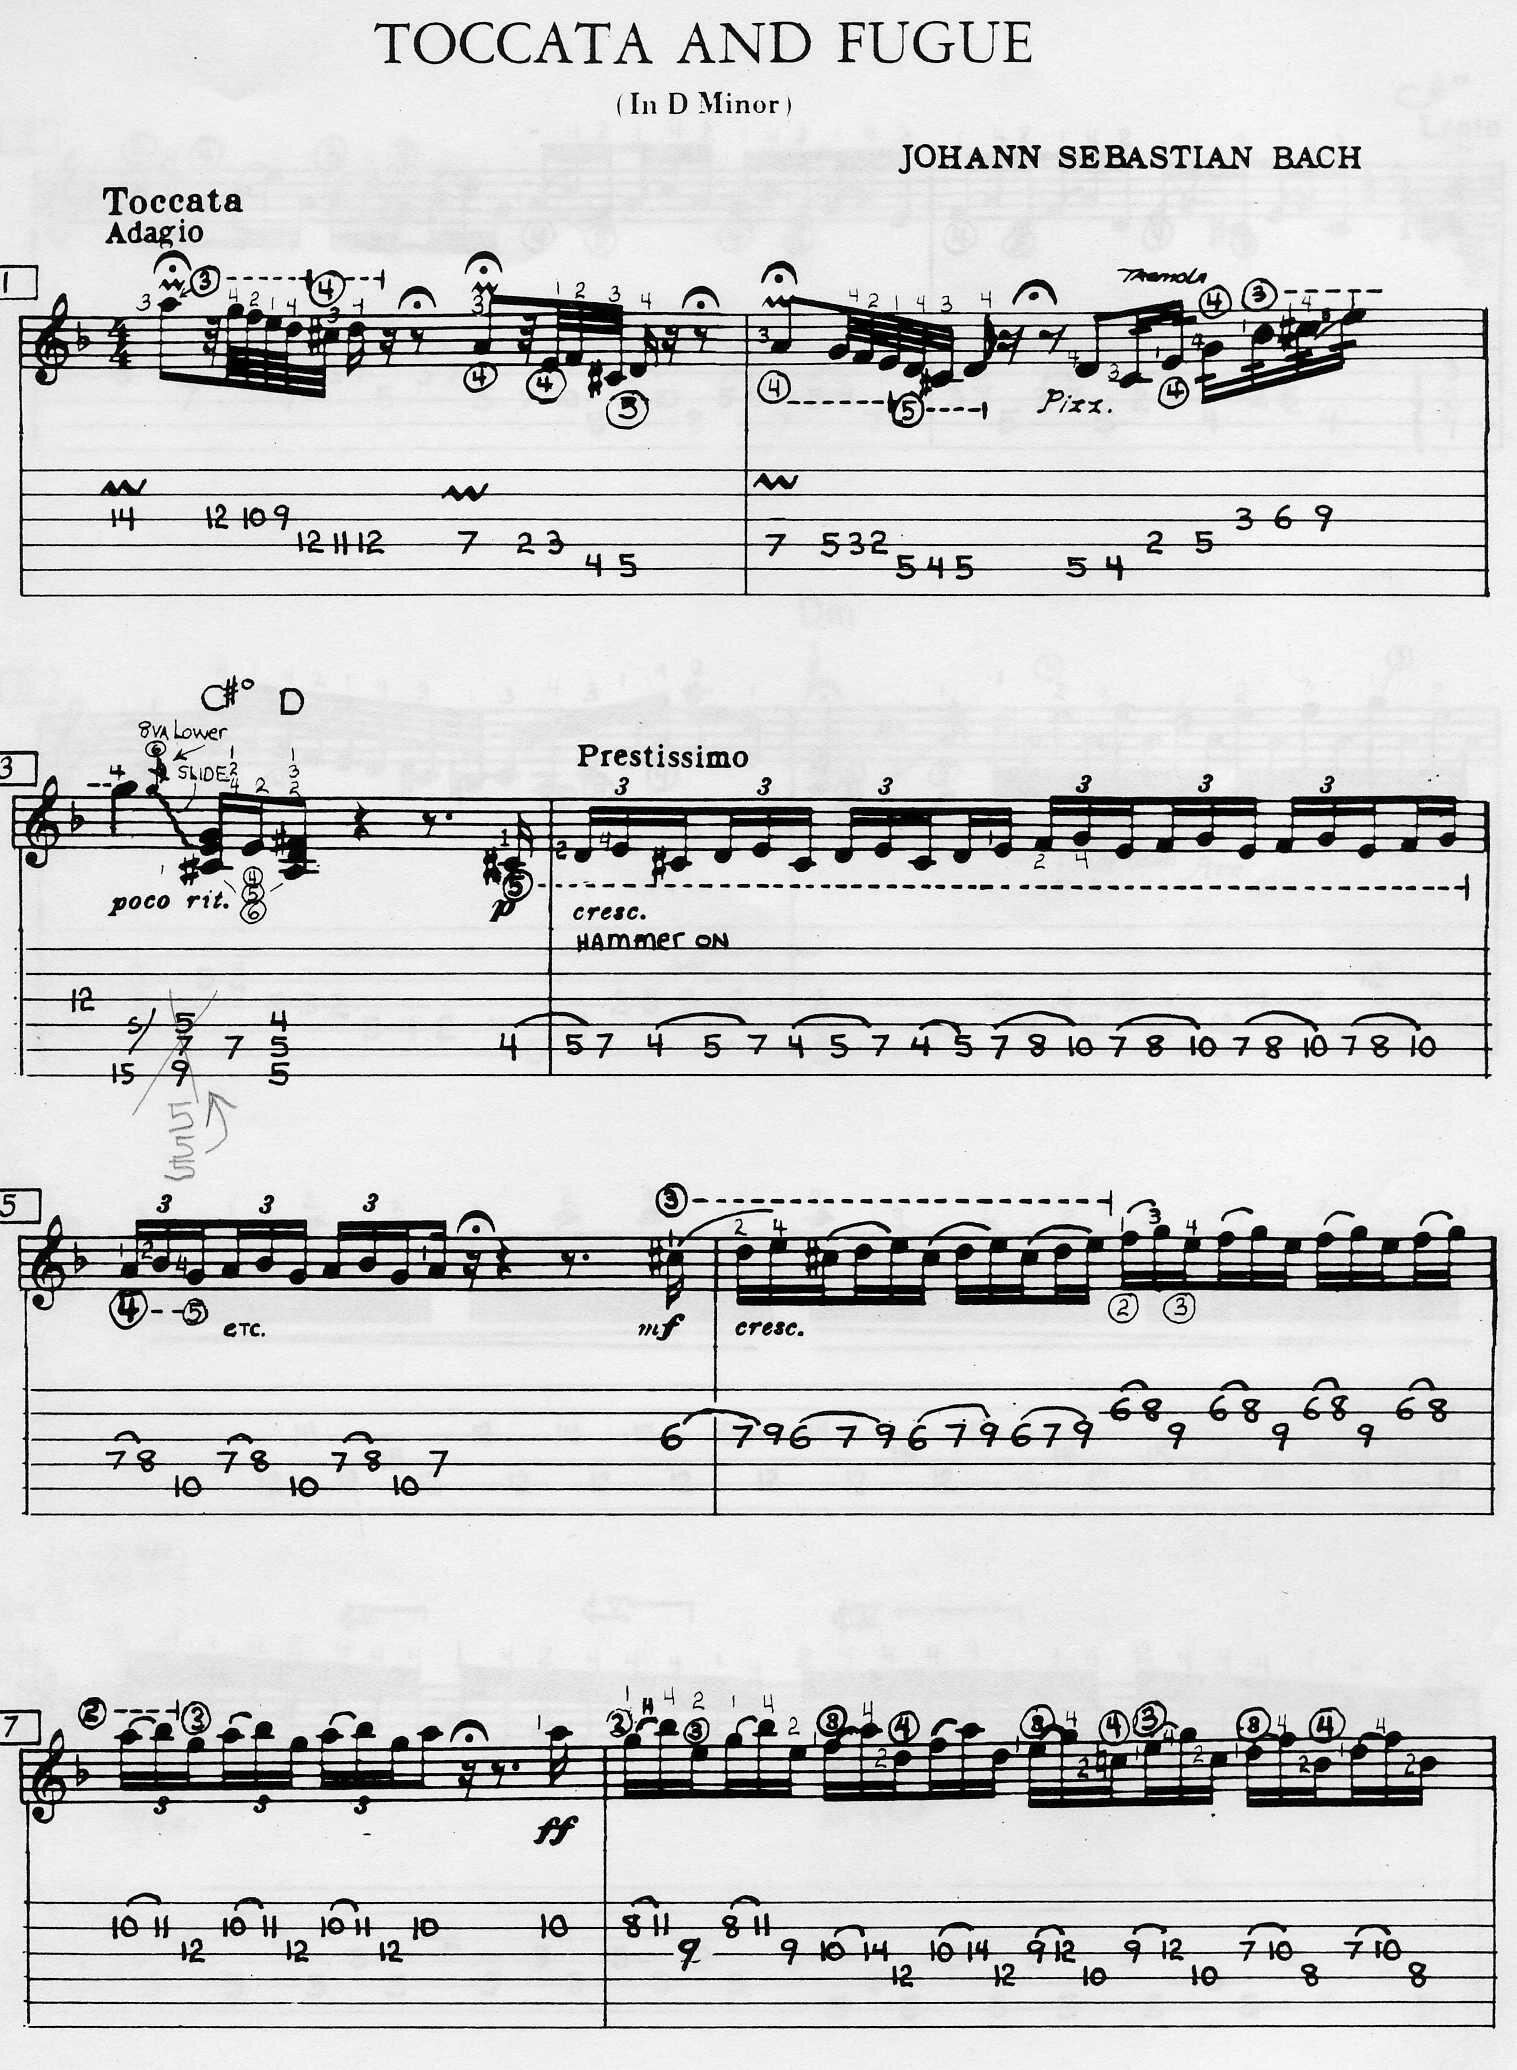 a study on toccata and fugue Back in arnstadt, bach wrote 'toccata and fugue in d minor' (1702), his first masterpiece which stemmed from his bold organ improvisations.